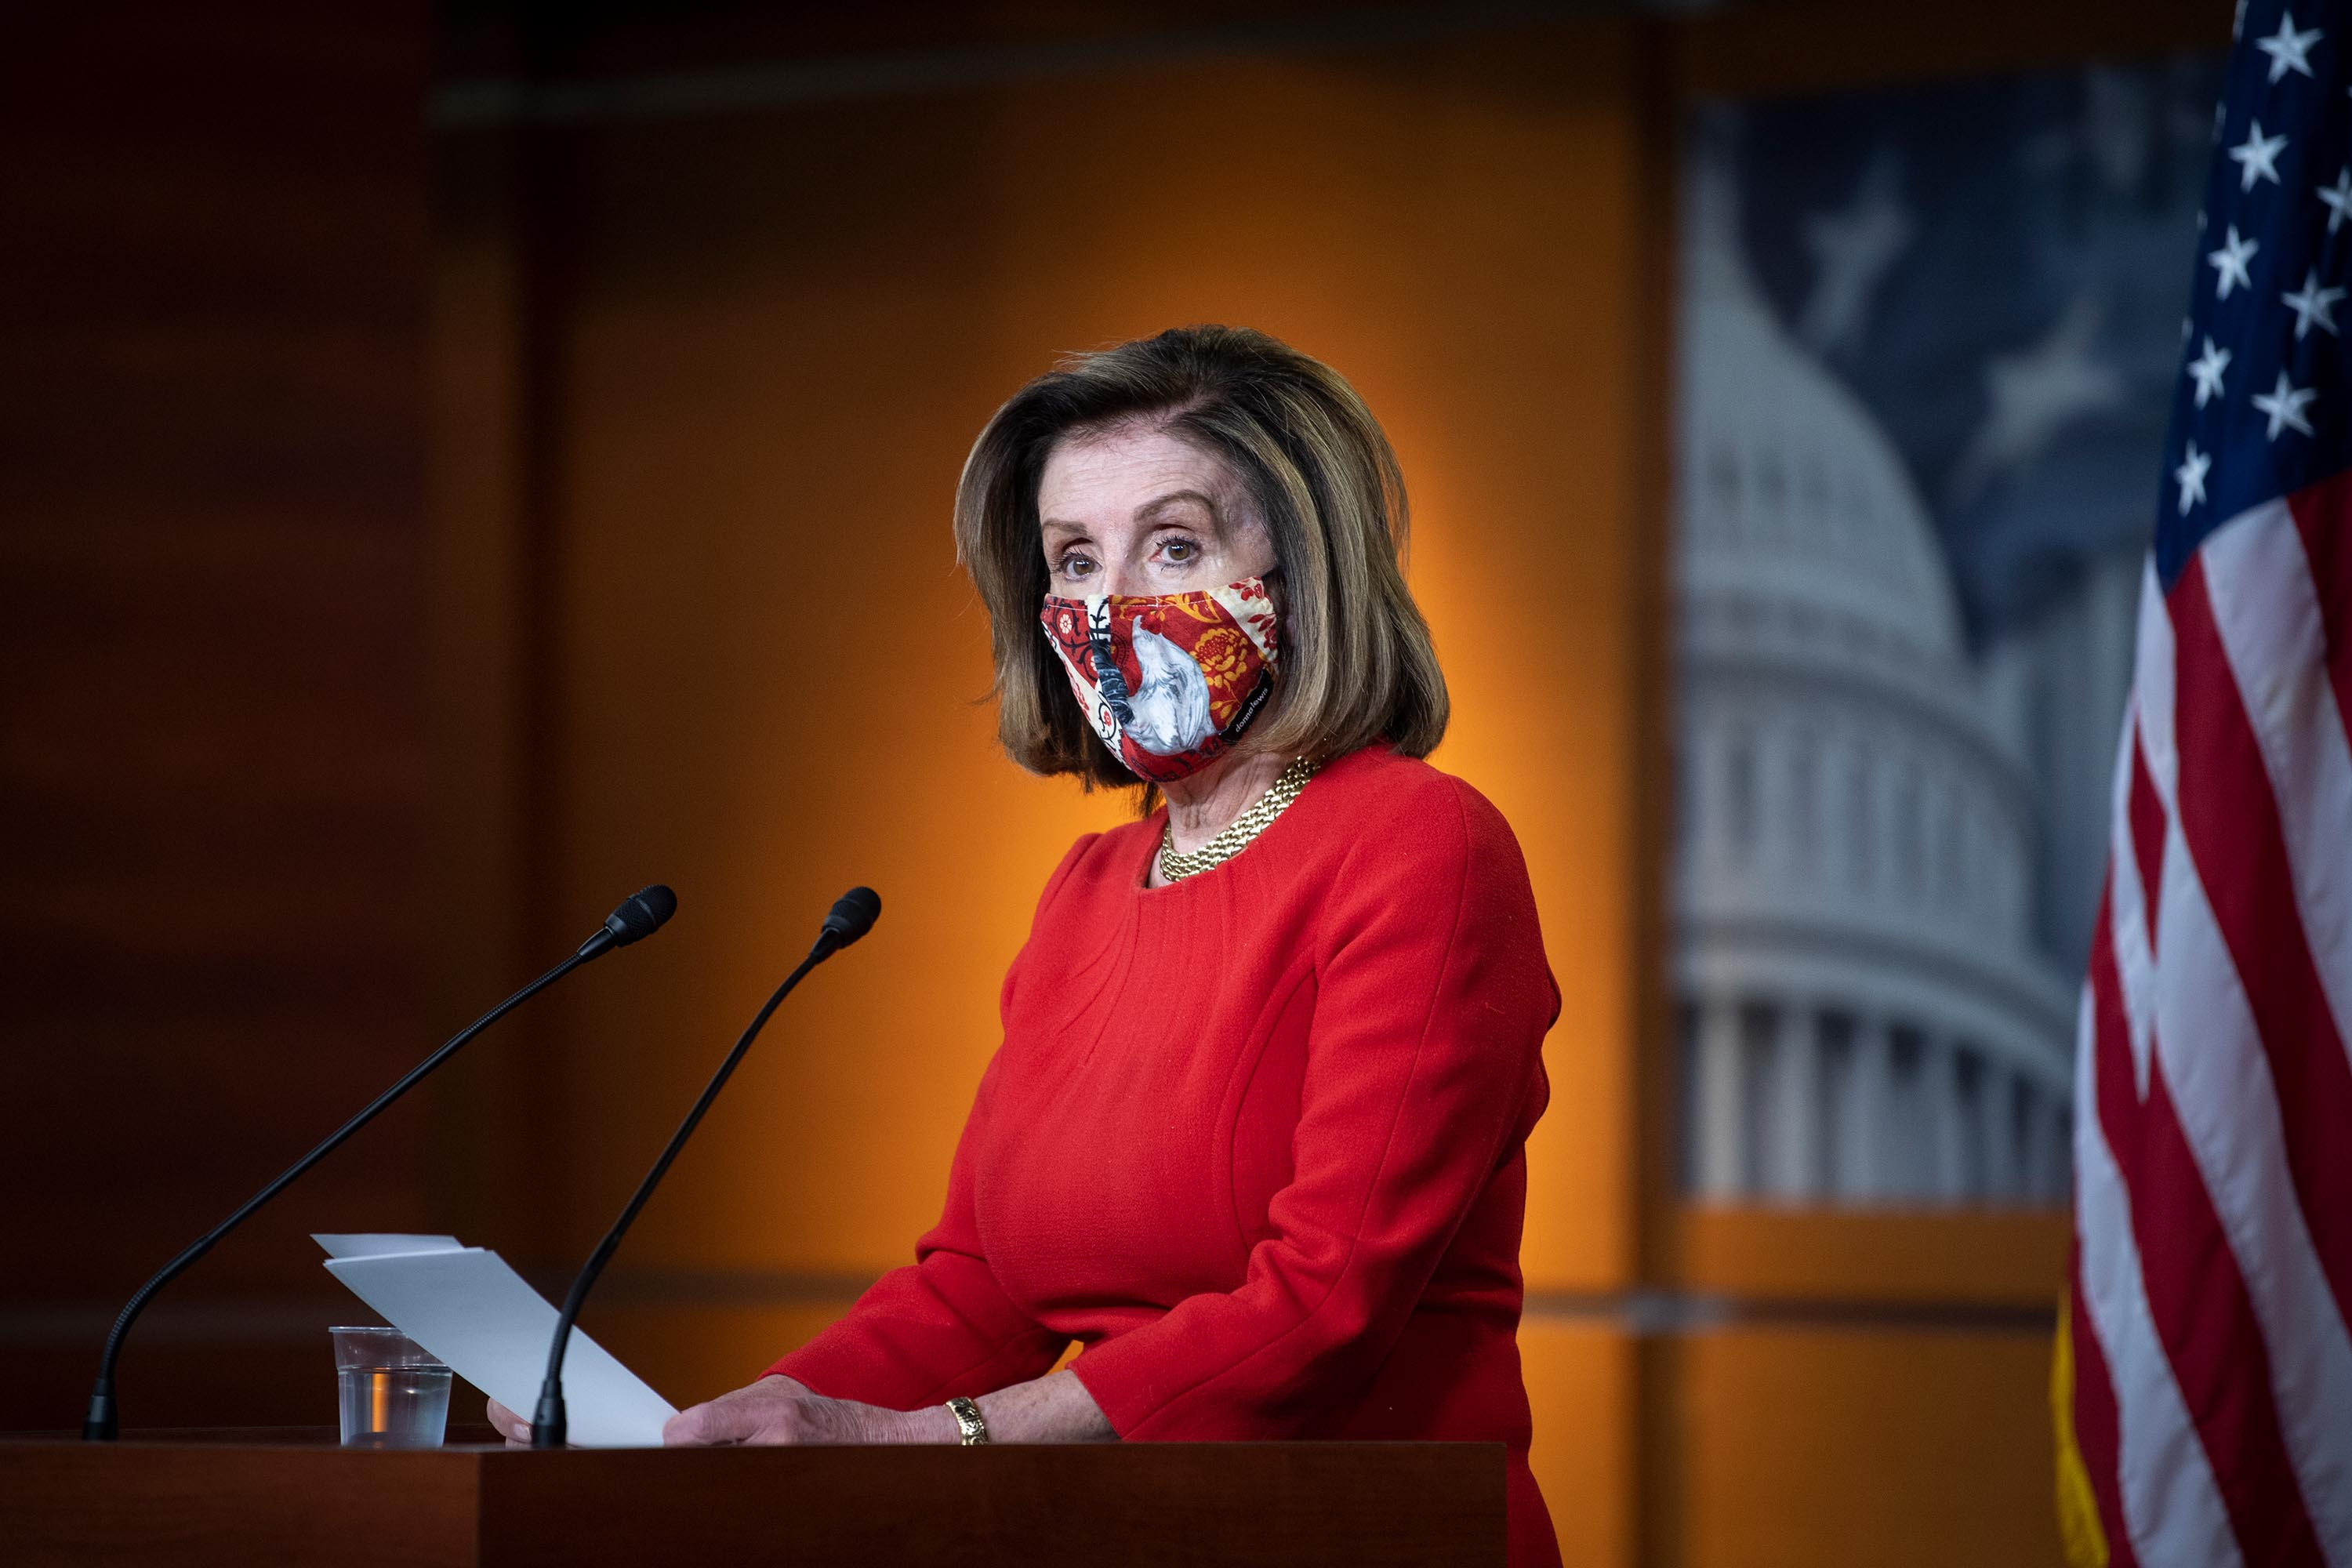 Pelosi defiant over handling of stimulus: Rejecting previous Republican proposals was 'not a mistake'